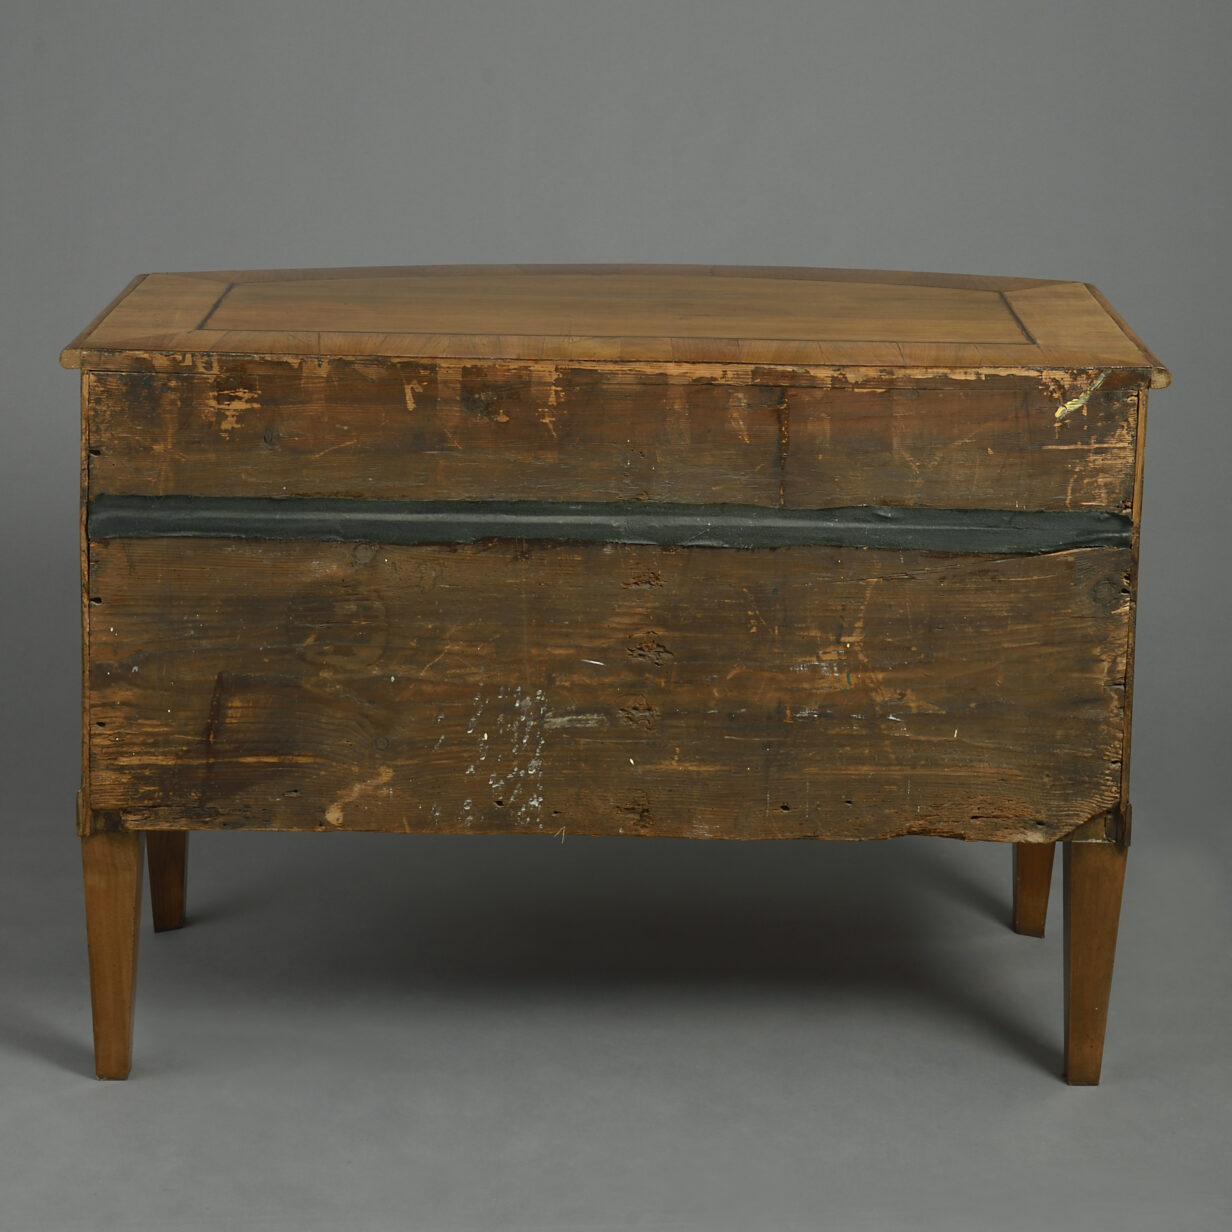 North Italian Bow Front Commode